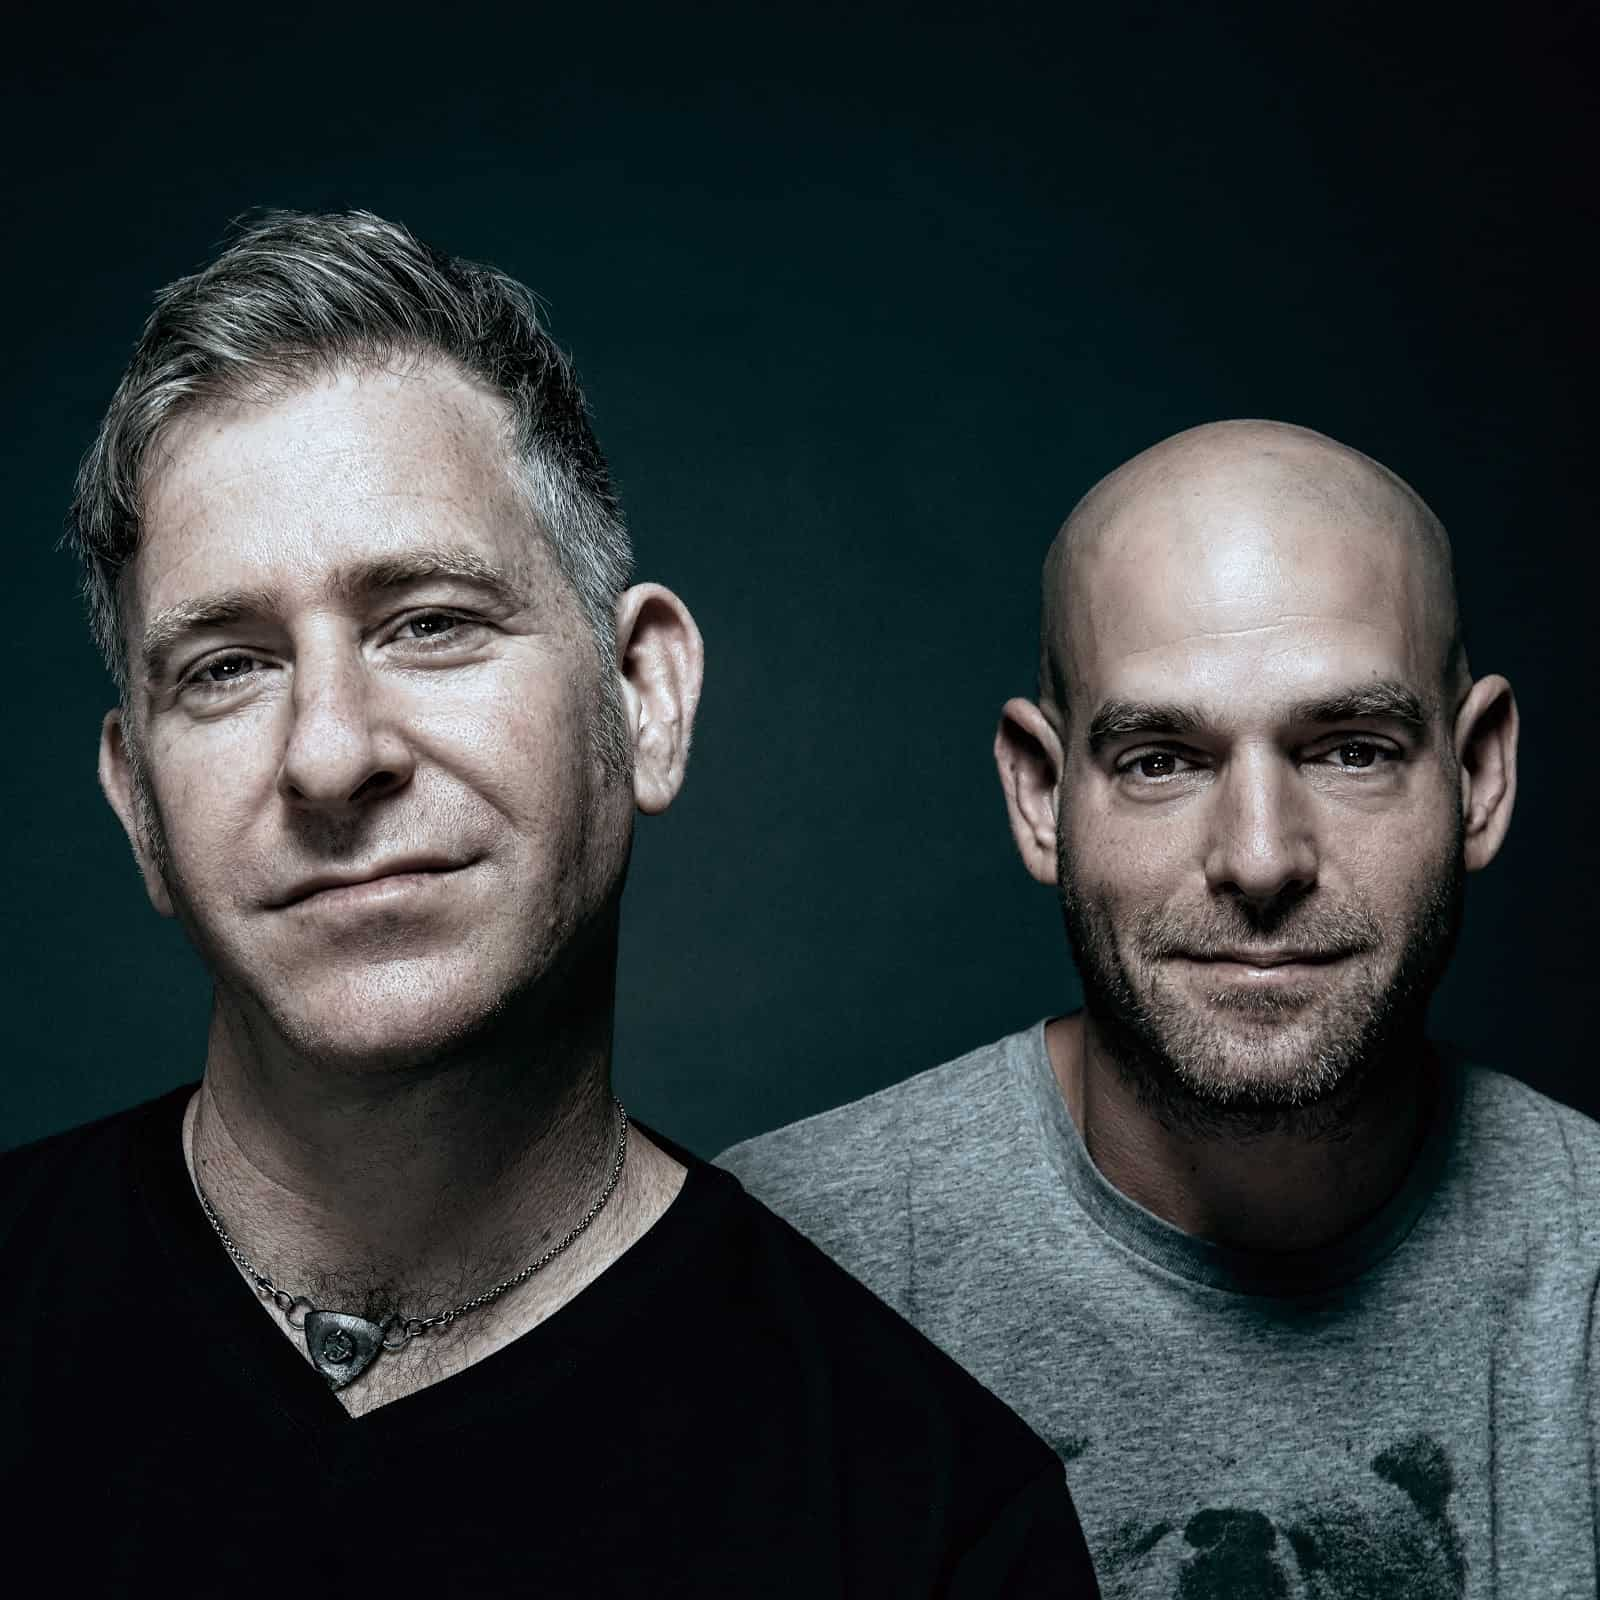 The First New Gabriel & Dresden Studio Album in 11 Years Arrives Via Anjunabeats